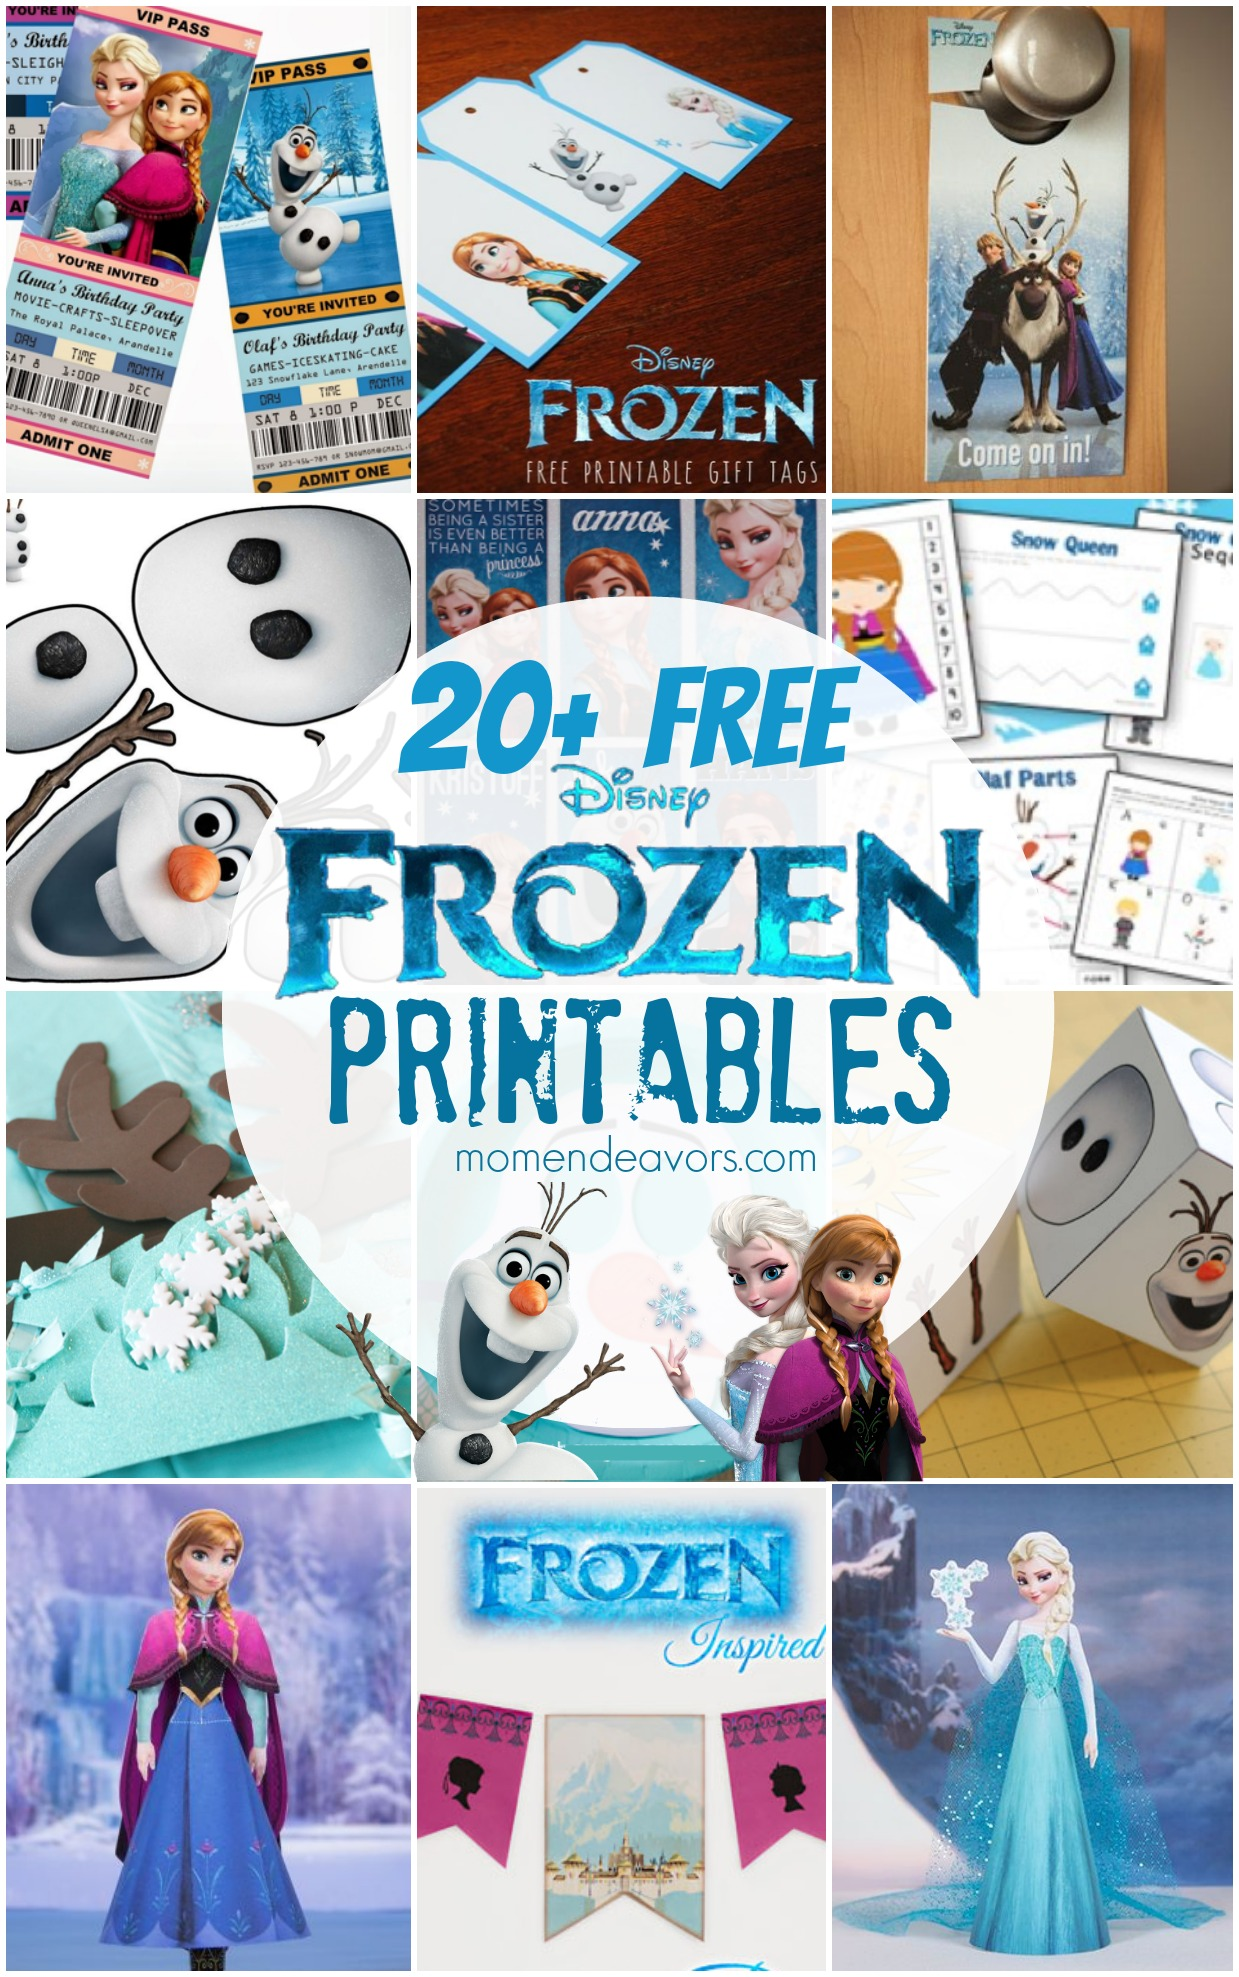 20+ Free Disney Frozen Printables